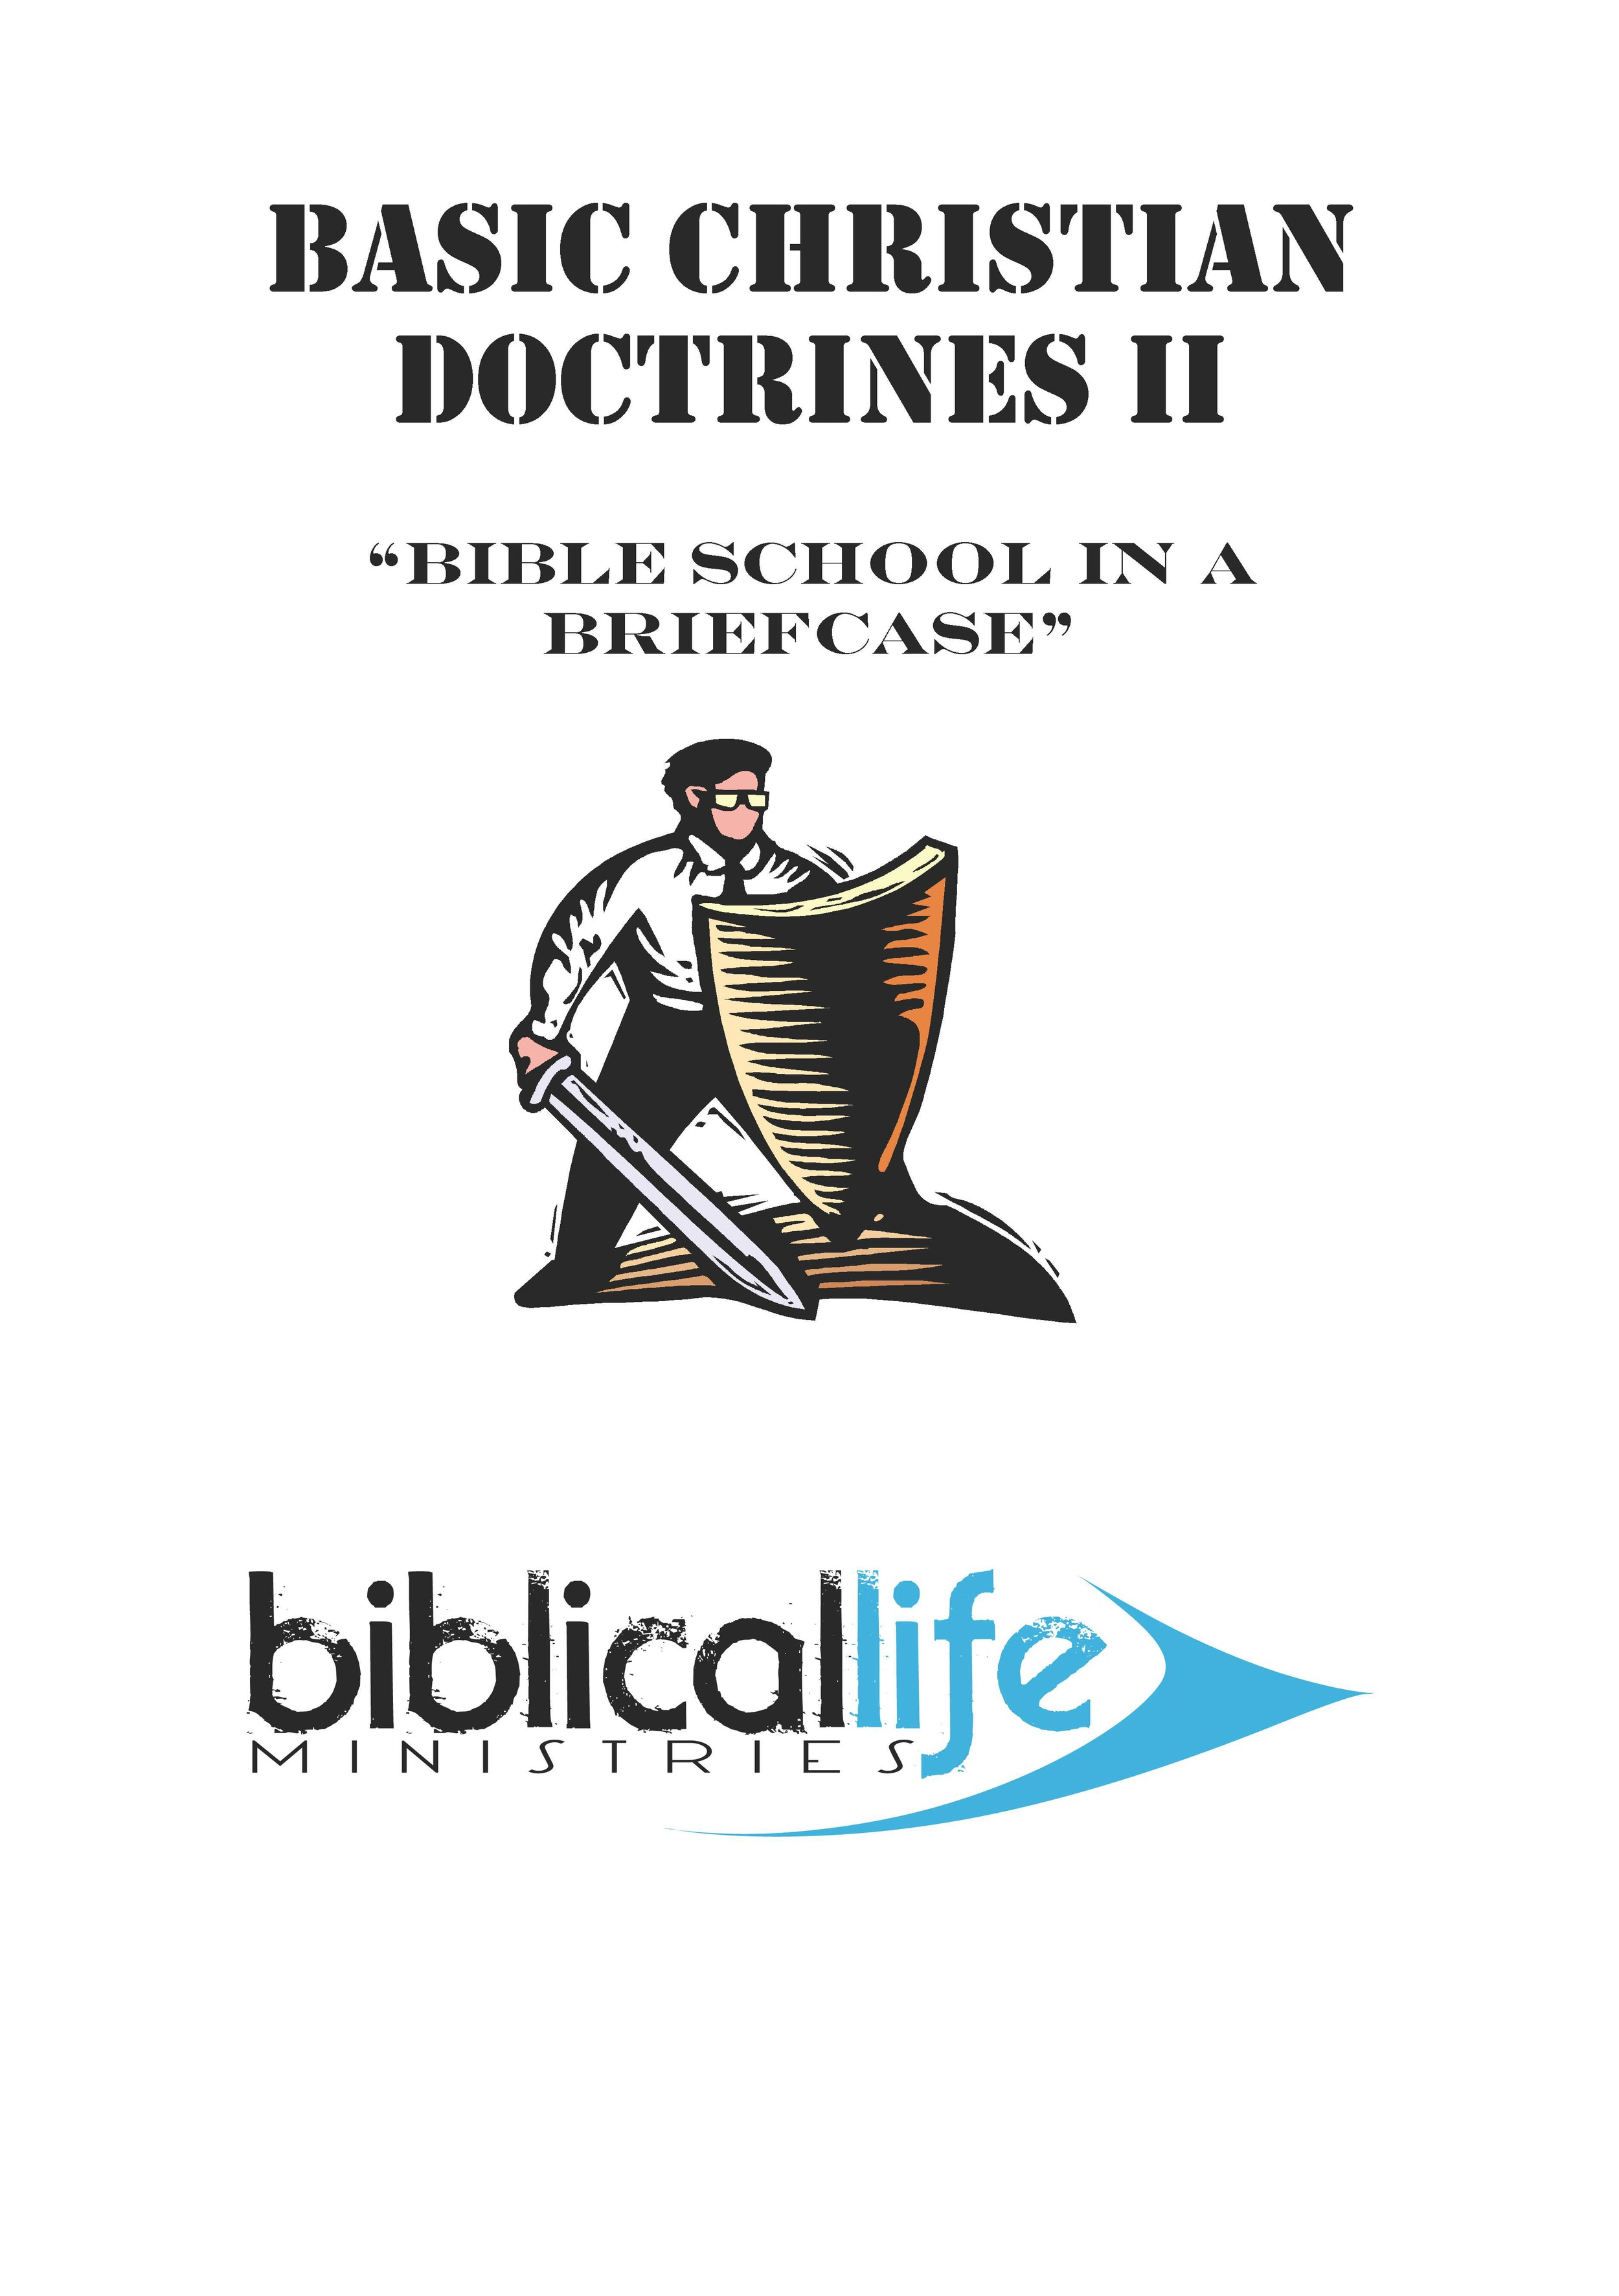 Basic Christian Doctrines II: The Lordship of Christ, Faith, Forgiveness, Authority of the Believer, End Times, Resurrection of the Dead, Eternal Judgment. 39 page manual.